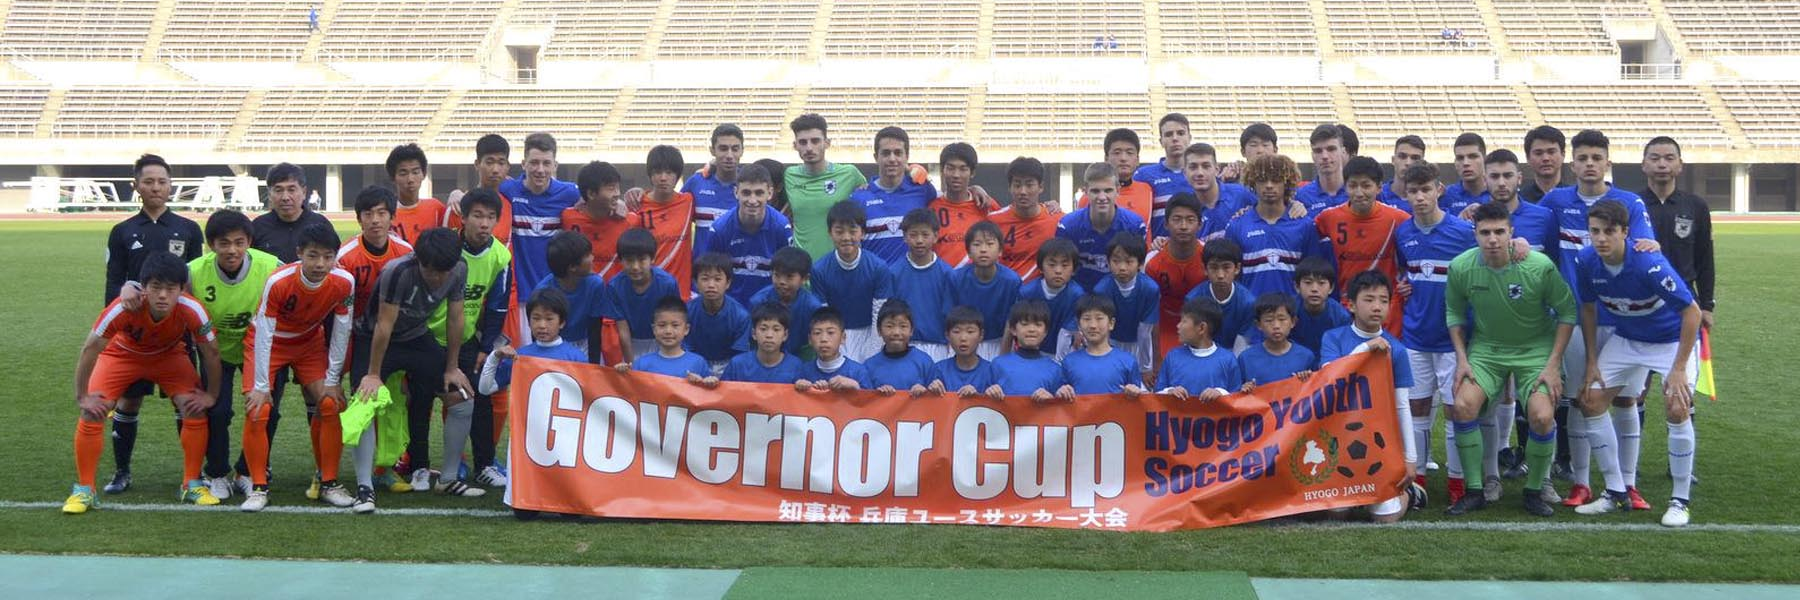 U.C. Sampdoria Under17 terza classificata alla Governor Cup 2018